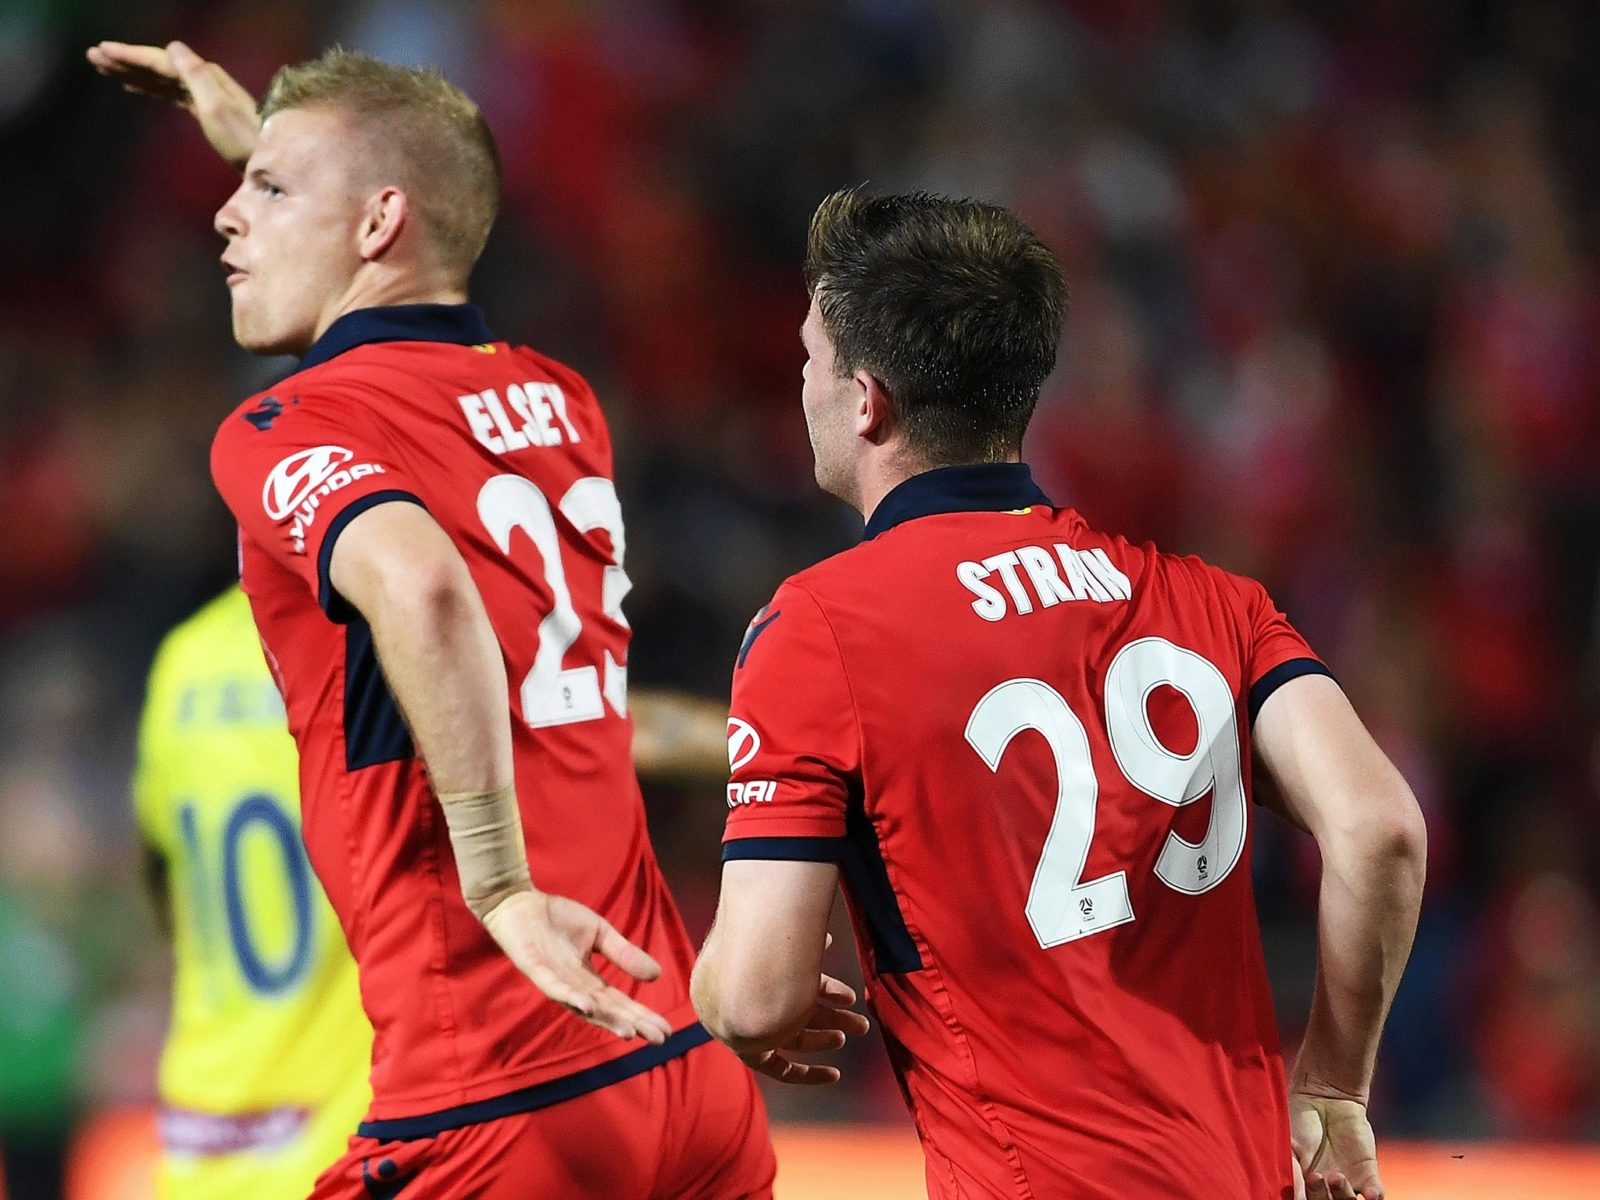 Jordan Elsey halves the deficit for Adelaide United against Central Coast.